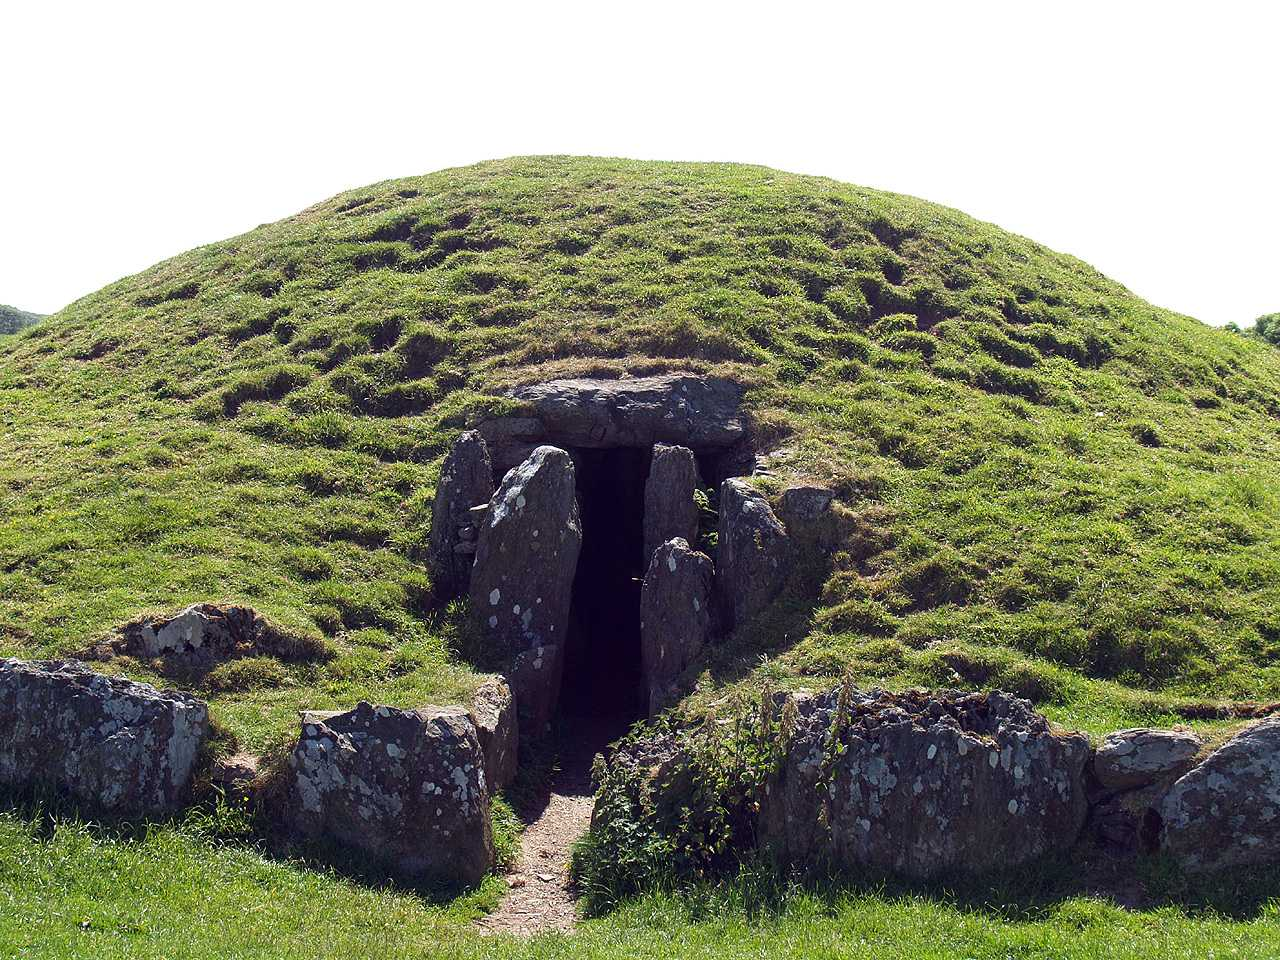 Anglesey, Llanddaniel, Bryn Celli Ddu, close up of the front